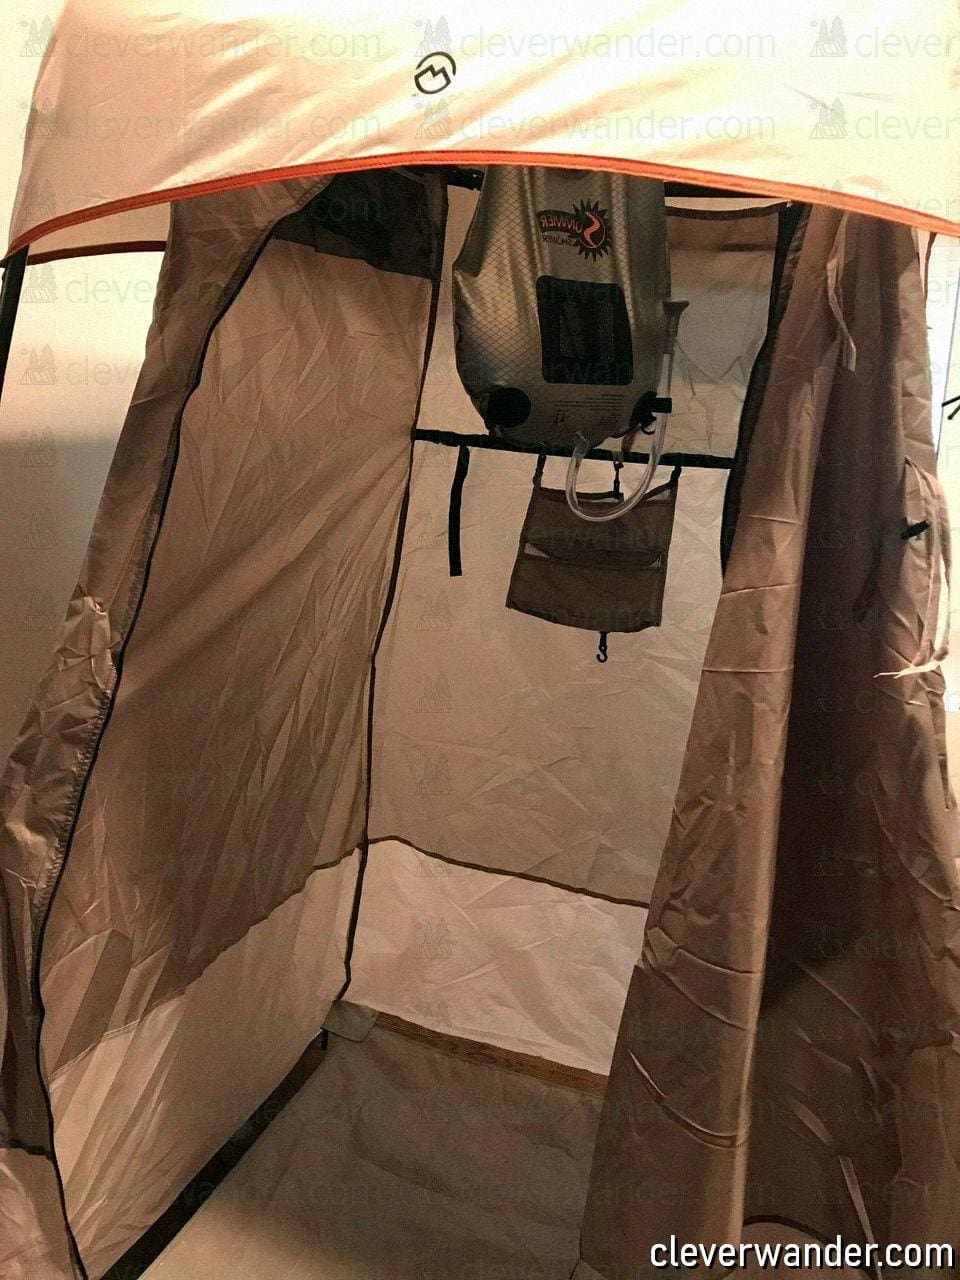 WolfWise Pop Up Privacy Shower Tent - image review 3